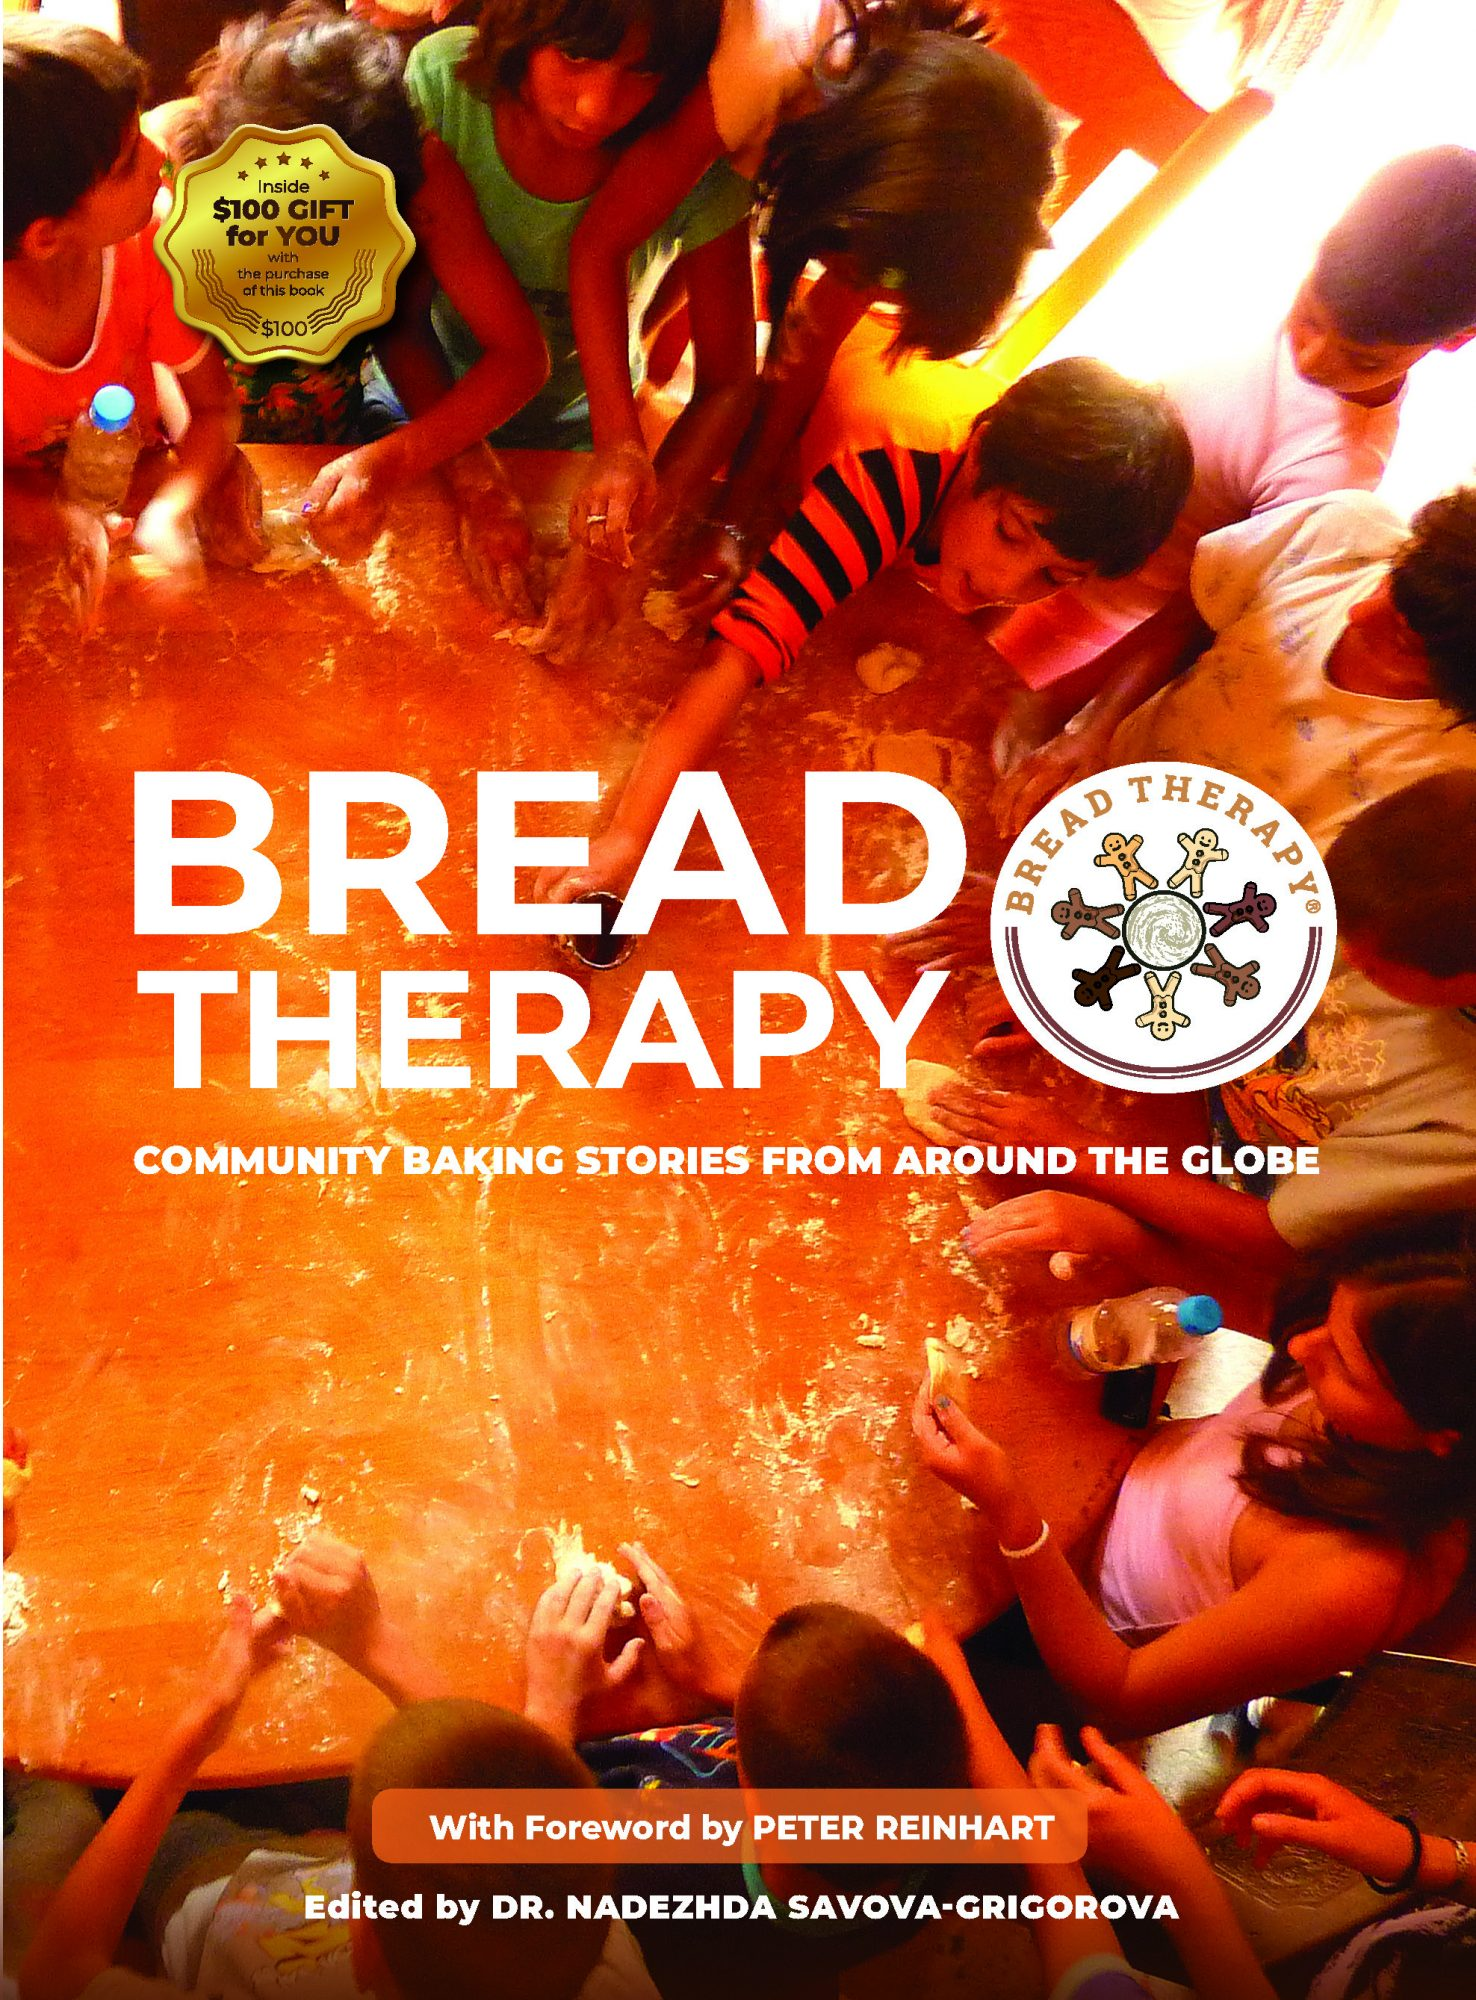 Bread Therapy - Community Baking Stories from Around the Globe